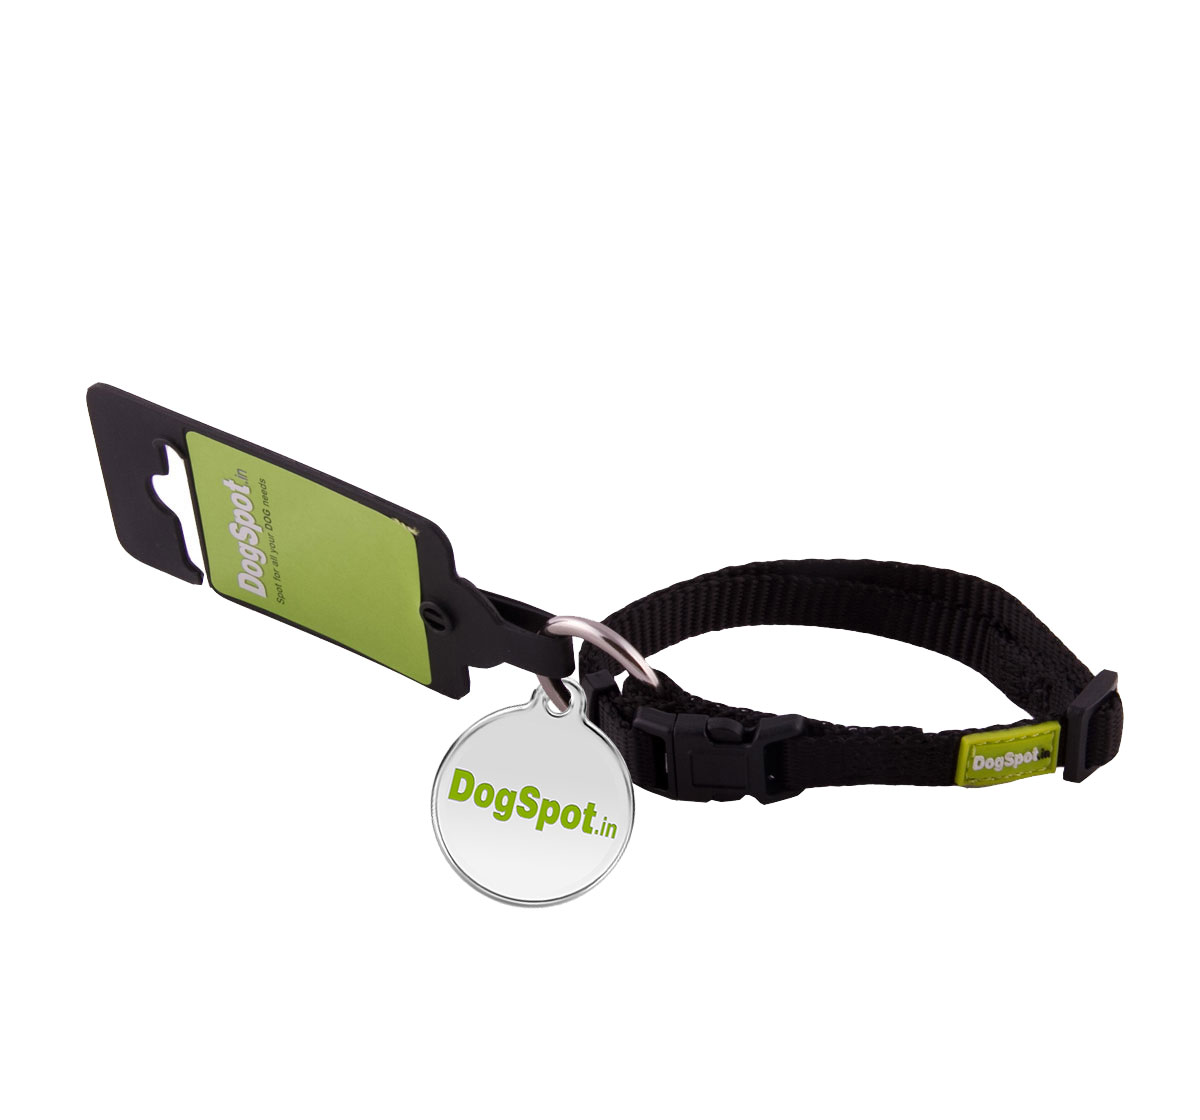 DogSpot Premium Adjustable CollarBlack - Xsmall With Wag Tag